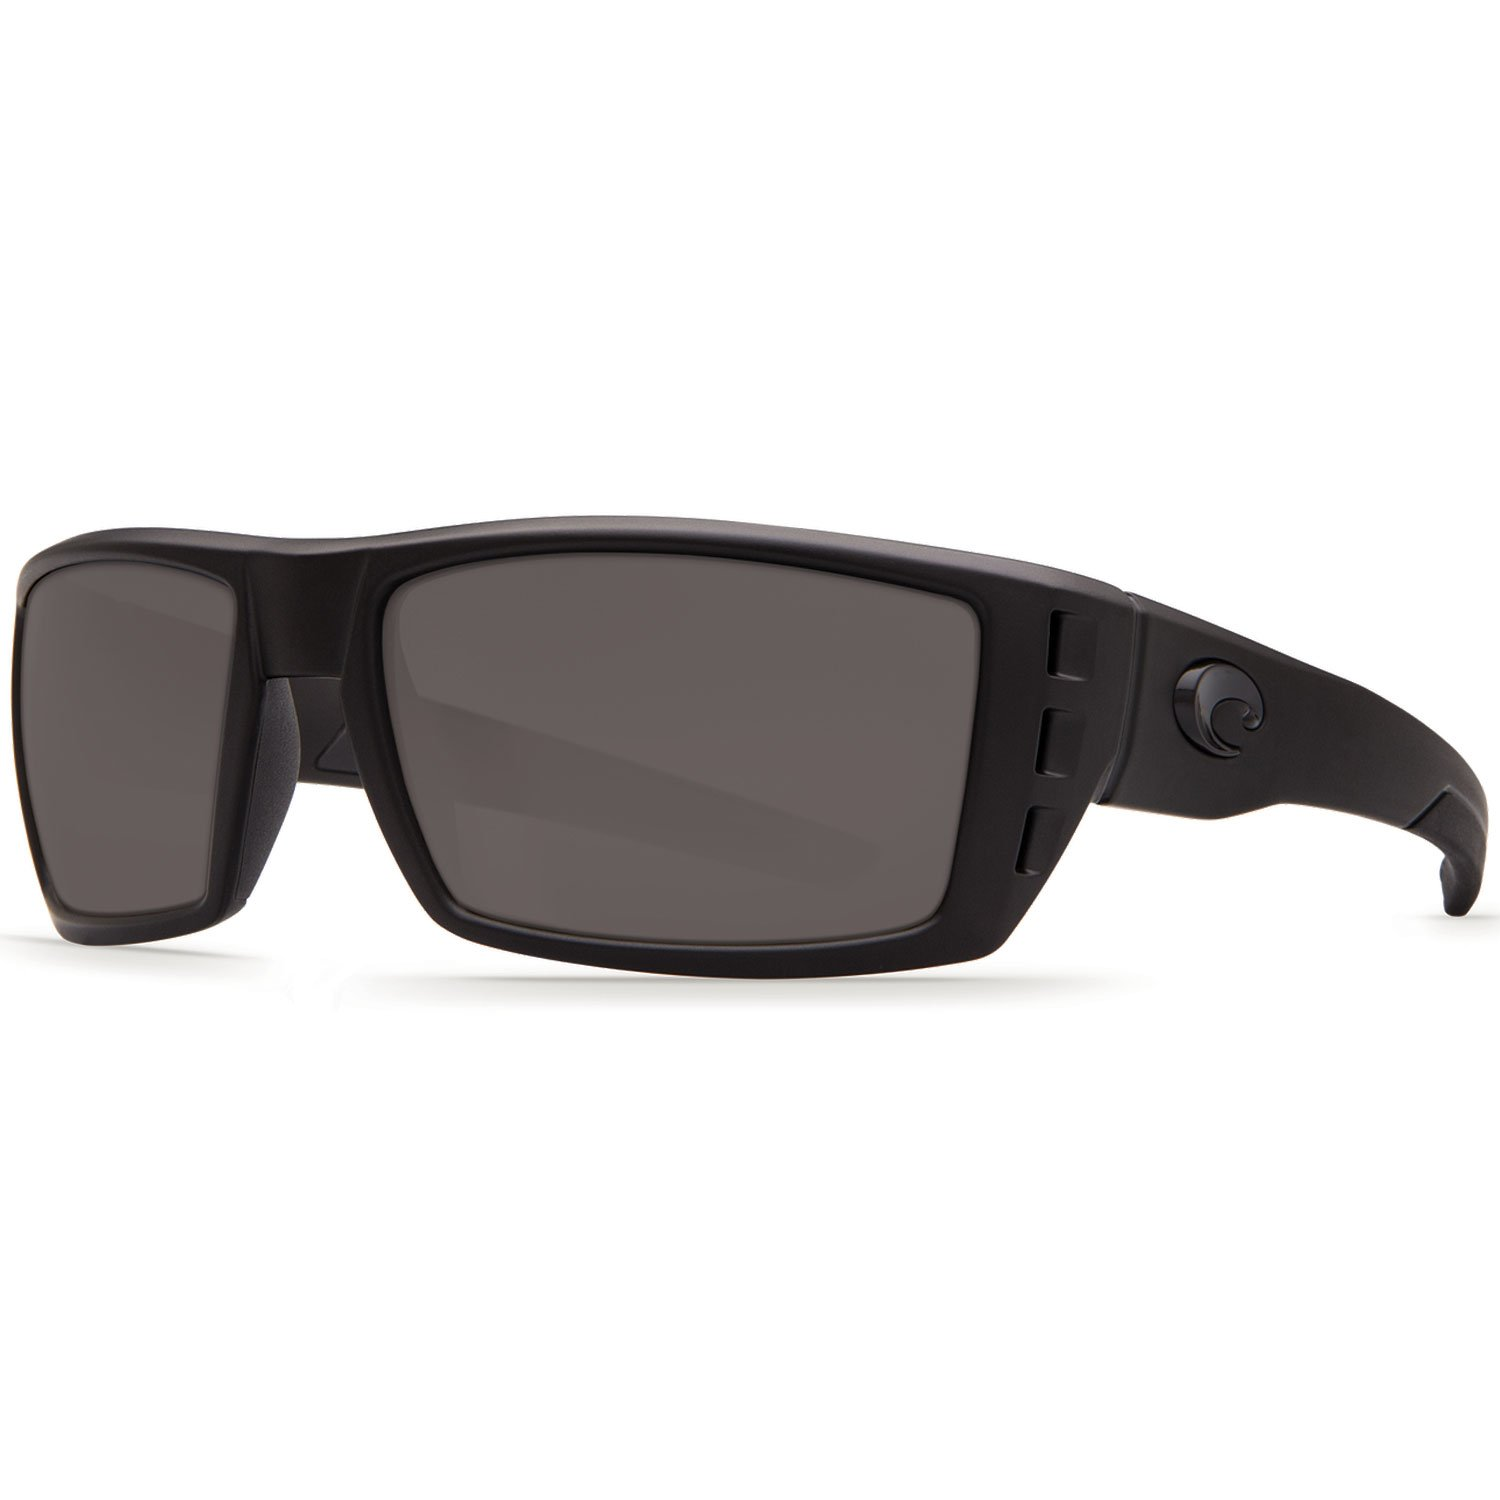 f205c2092a Amazon.com  Costa Del Mar Rafael Sunglasses   Clothing